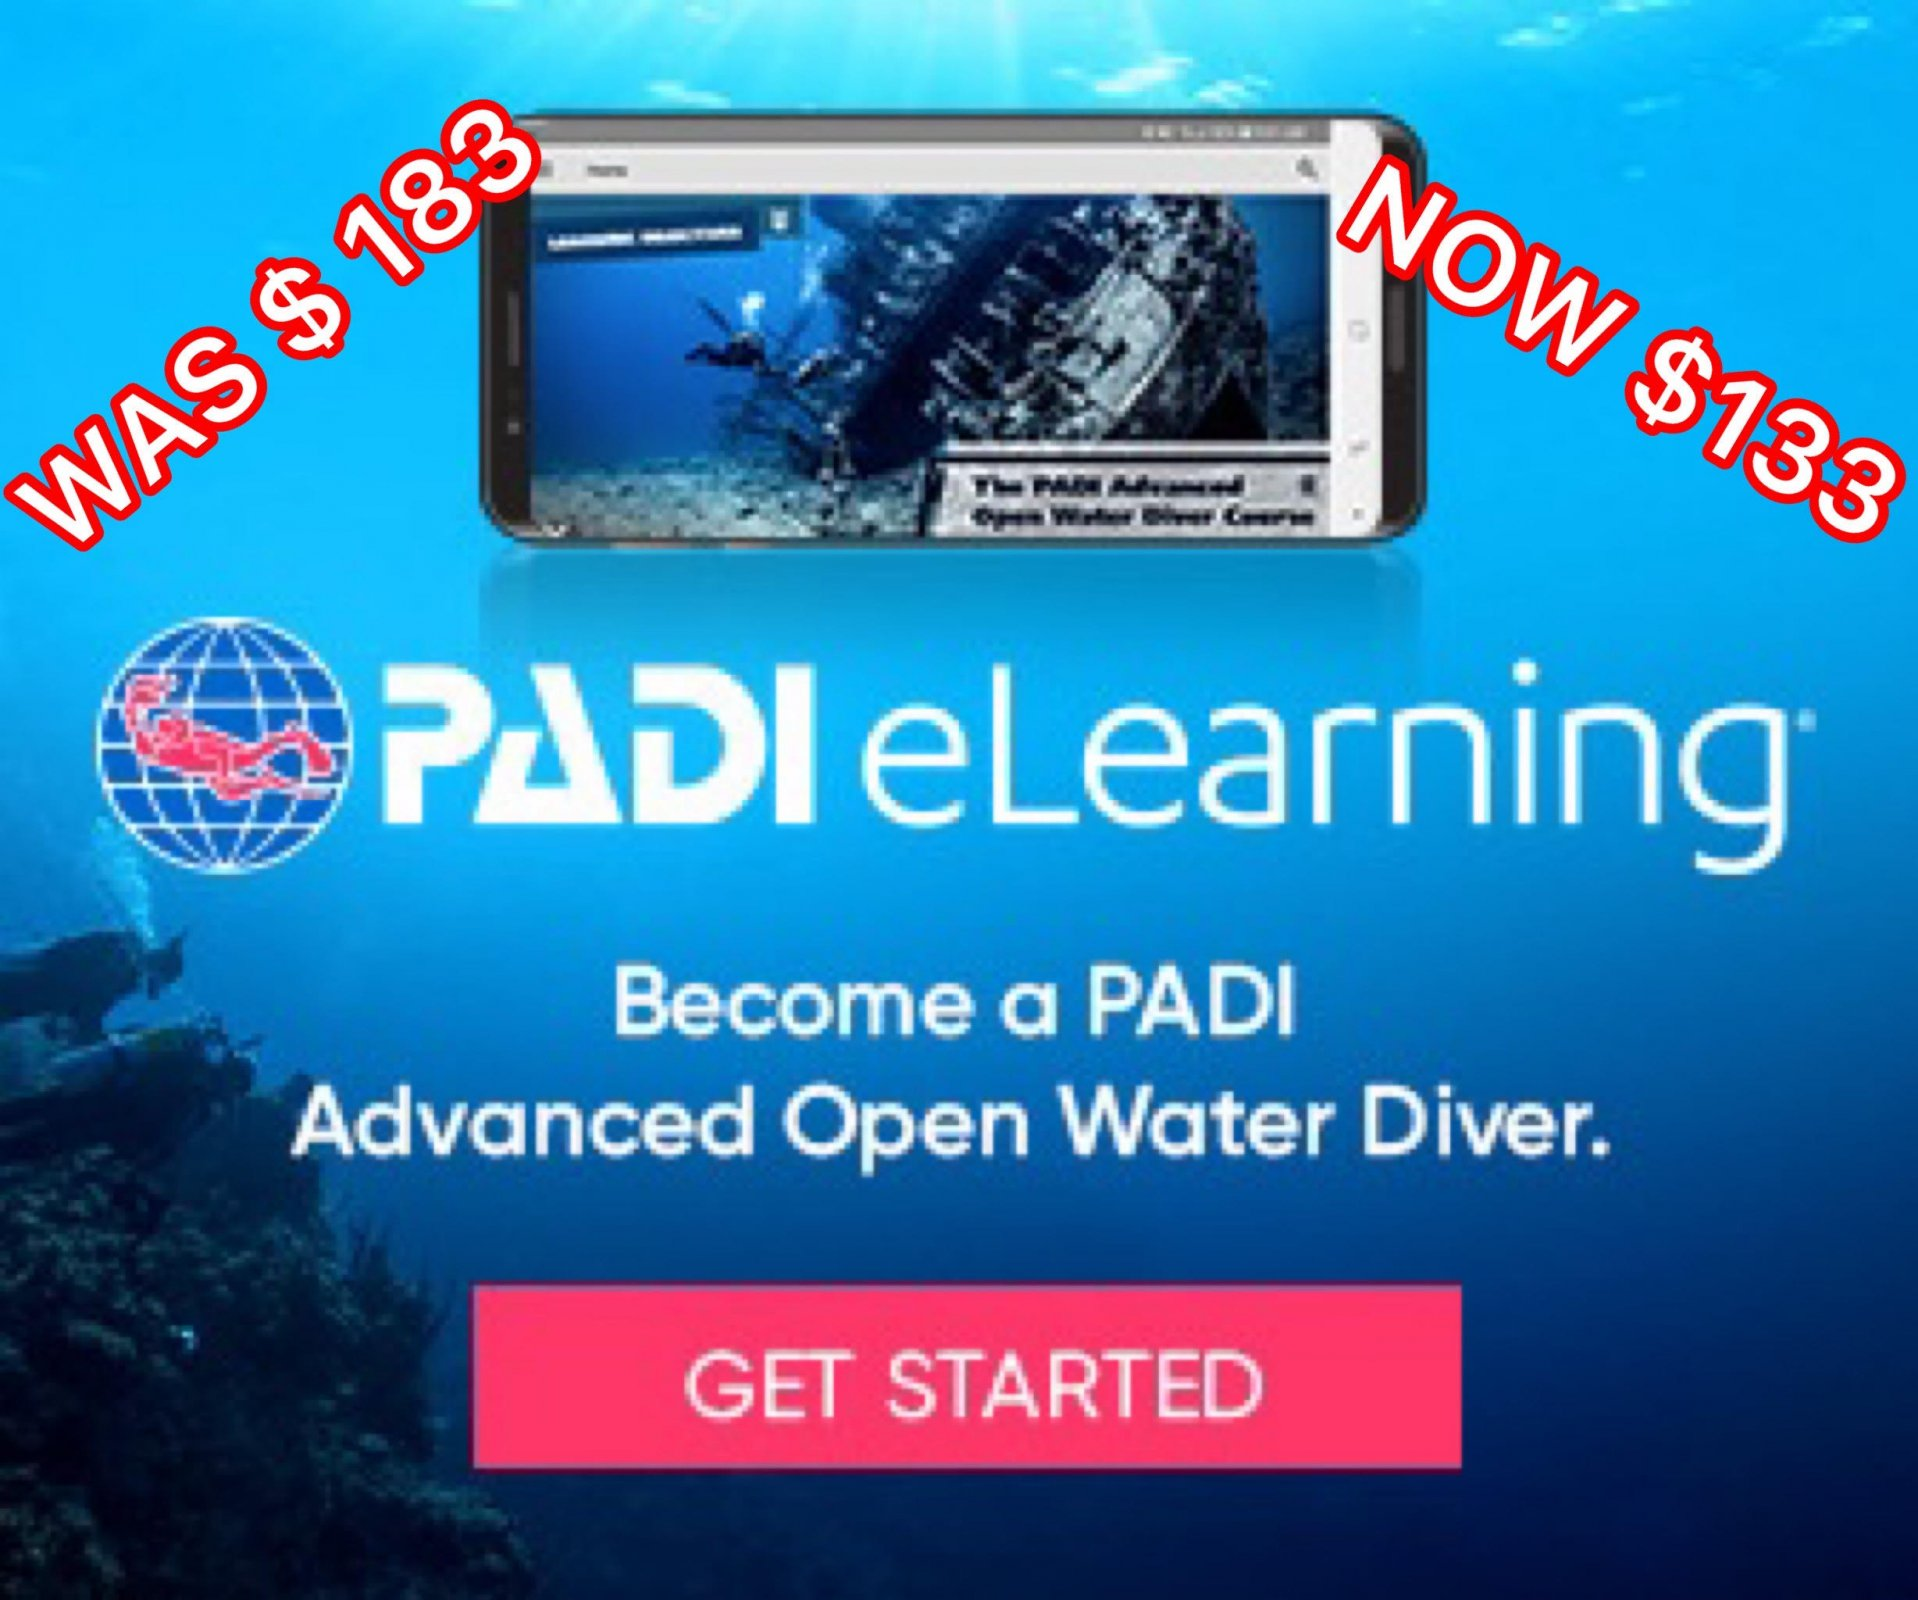 PADI E-LEARNING ADVANCED OPEN WATER